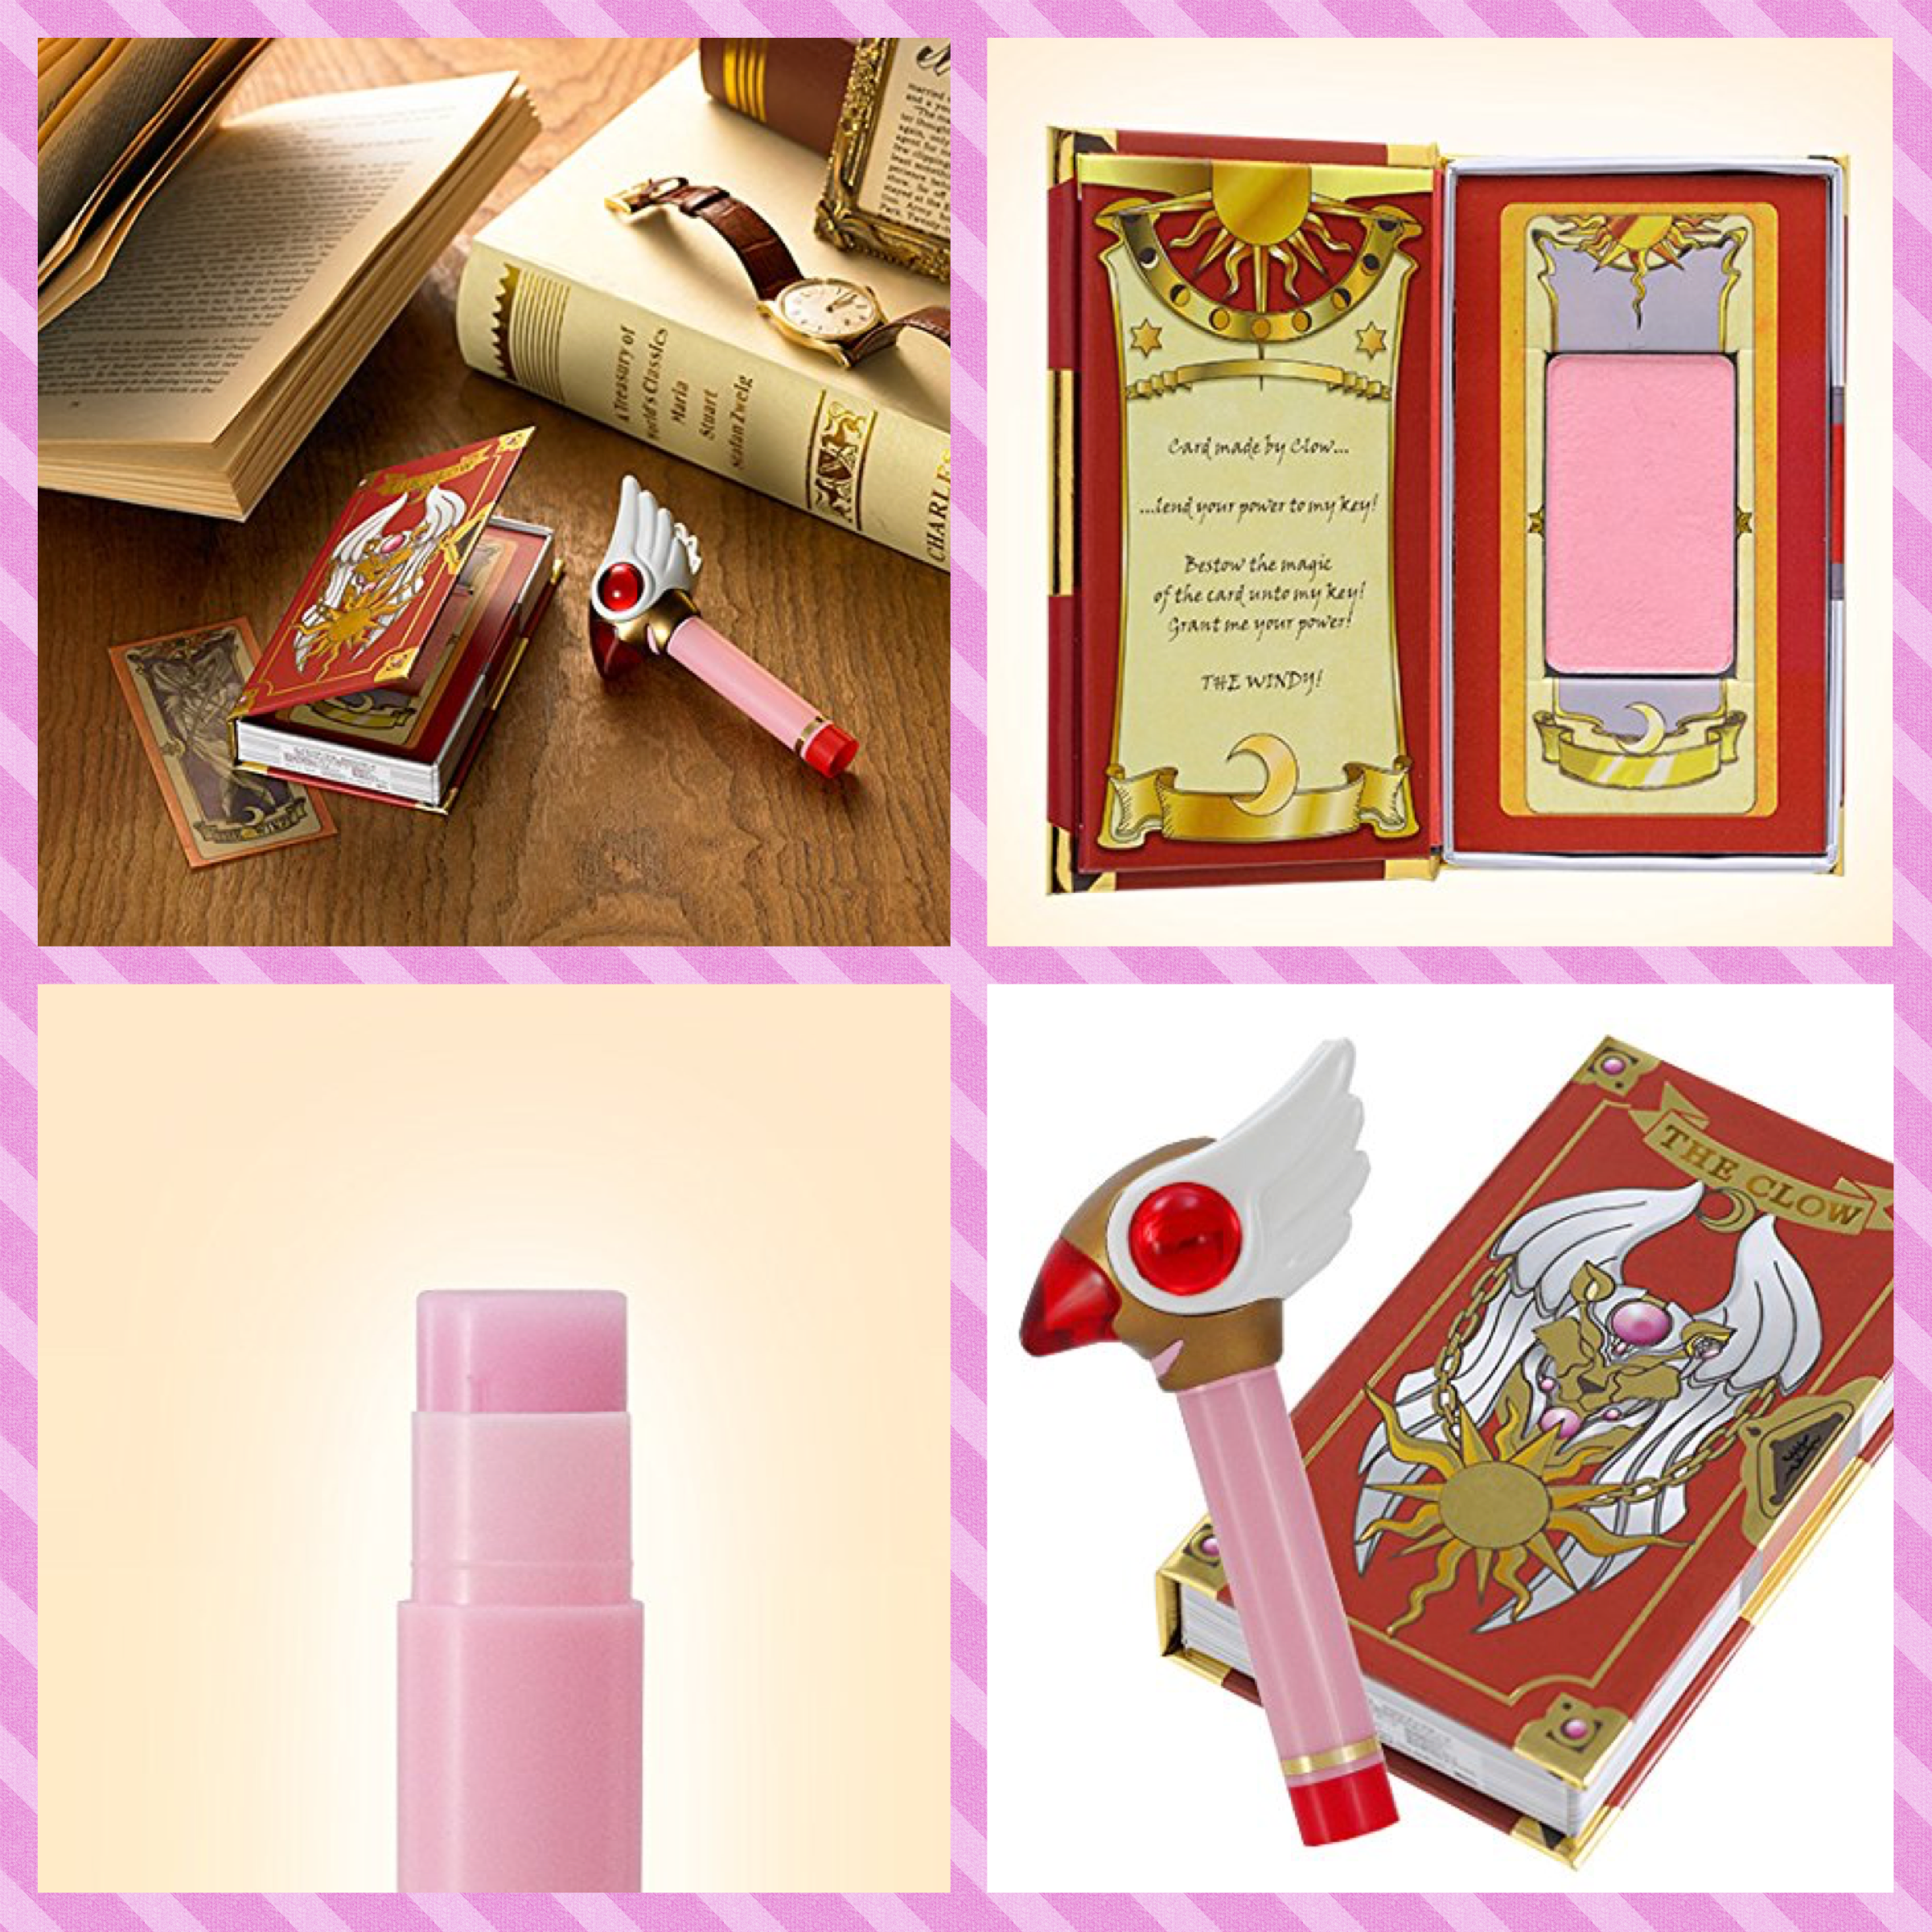 CCS make-up set